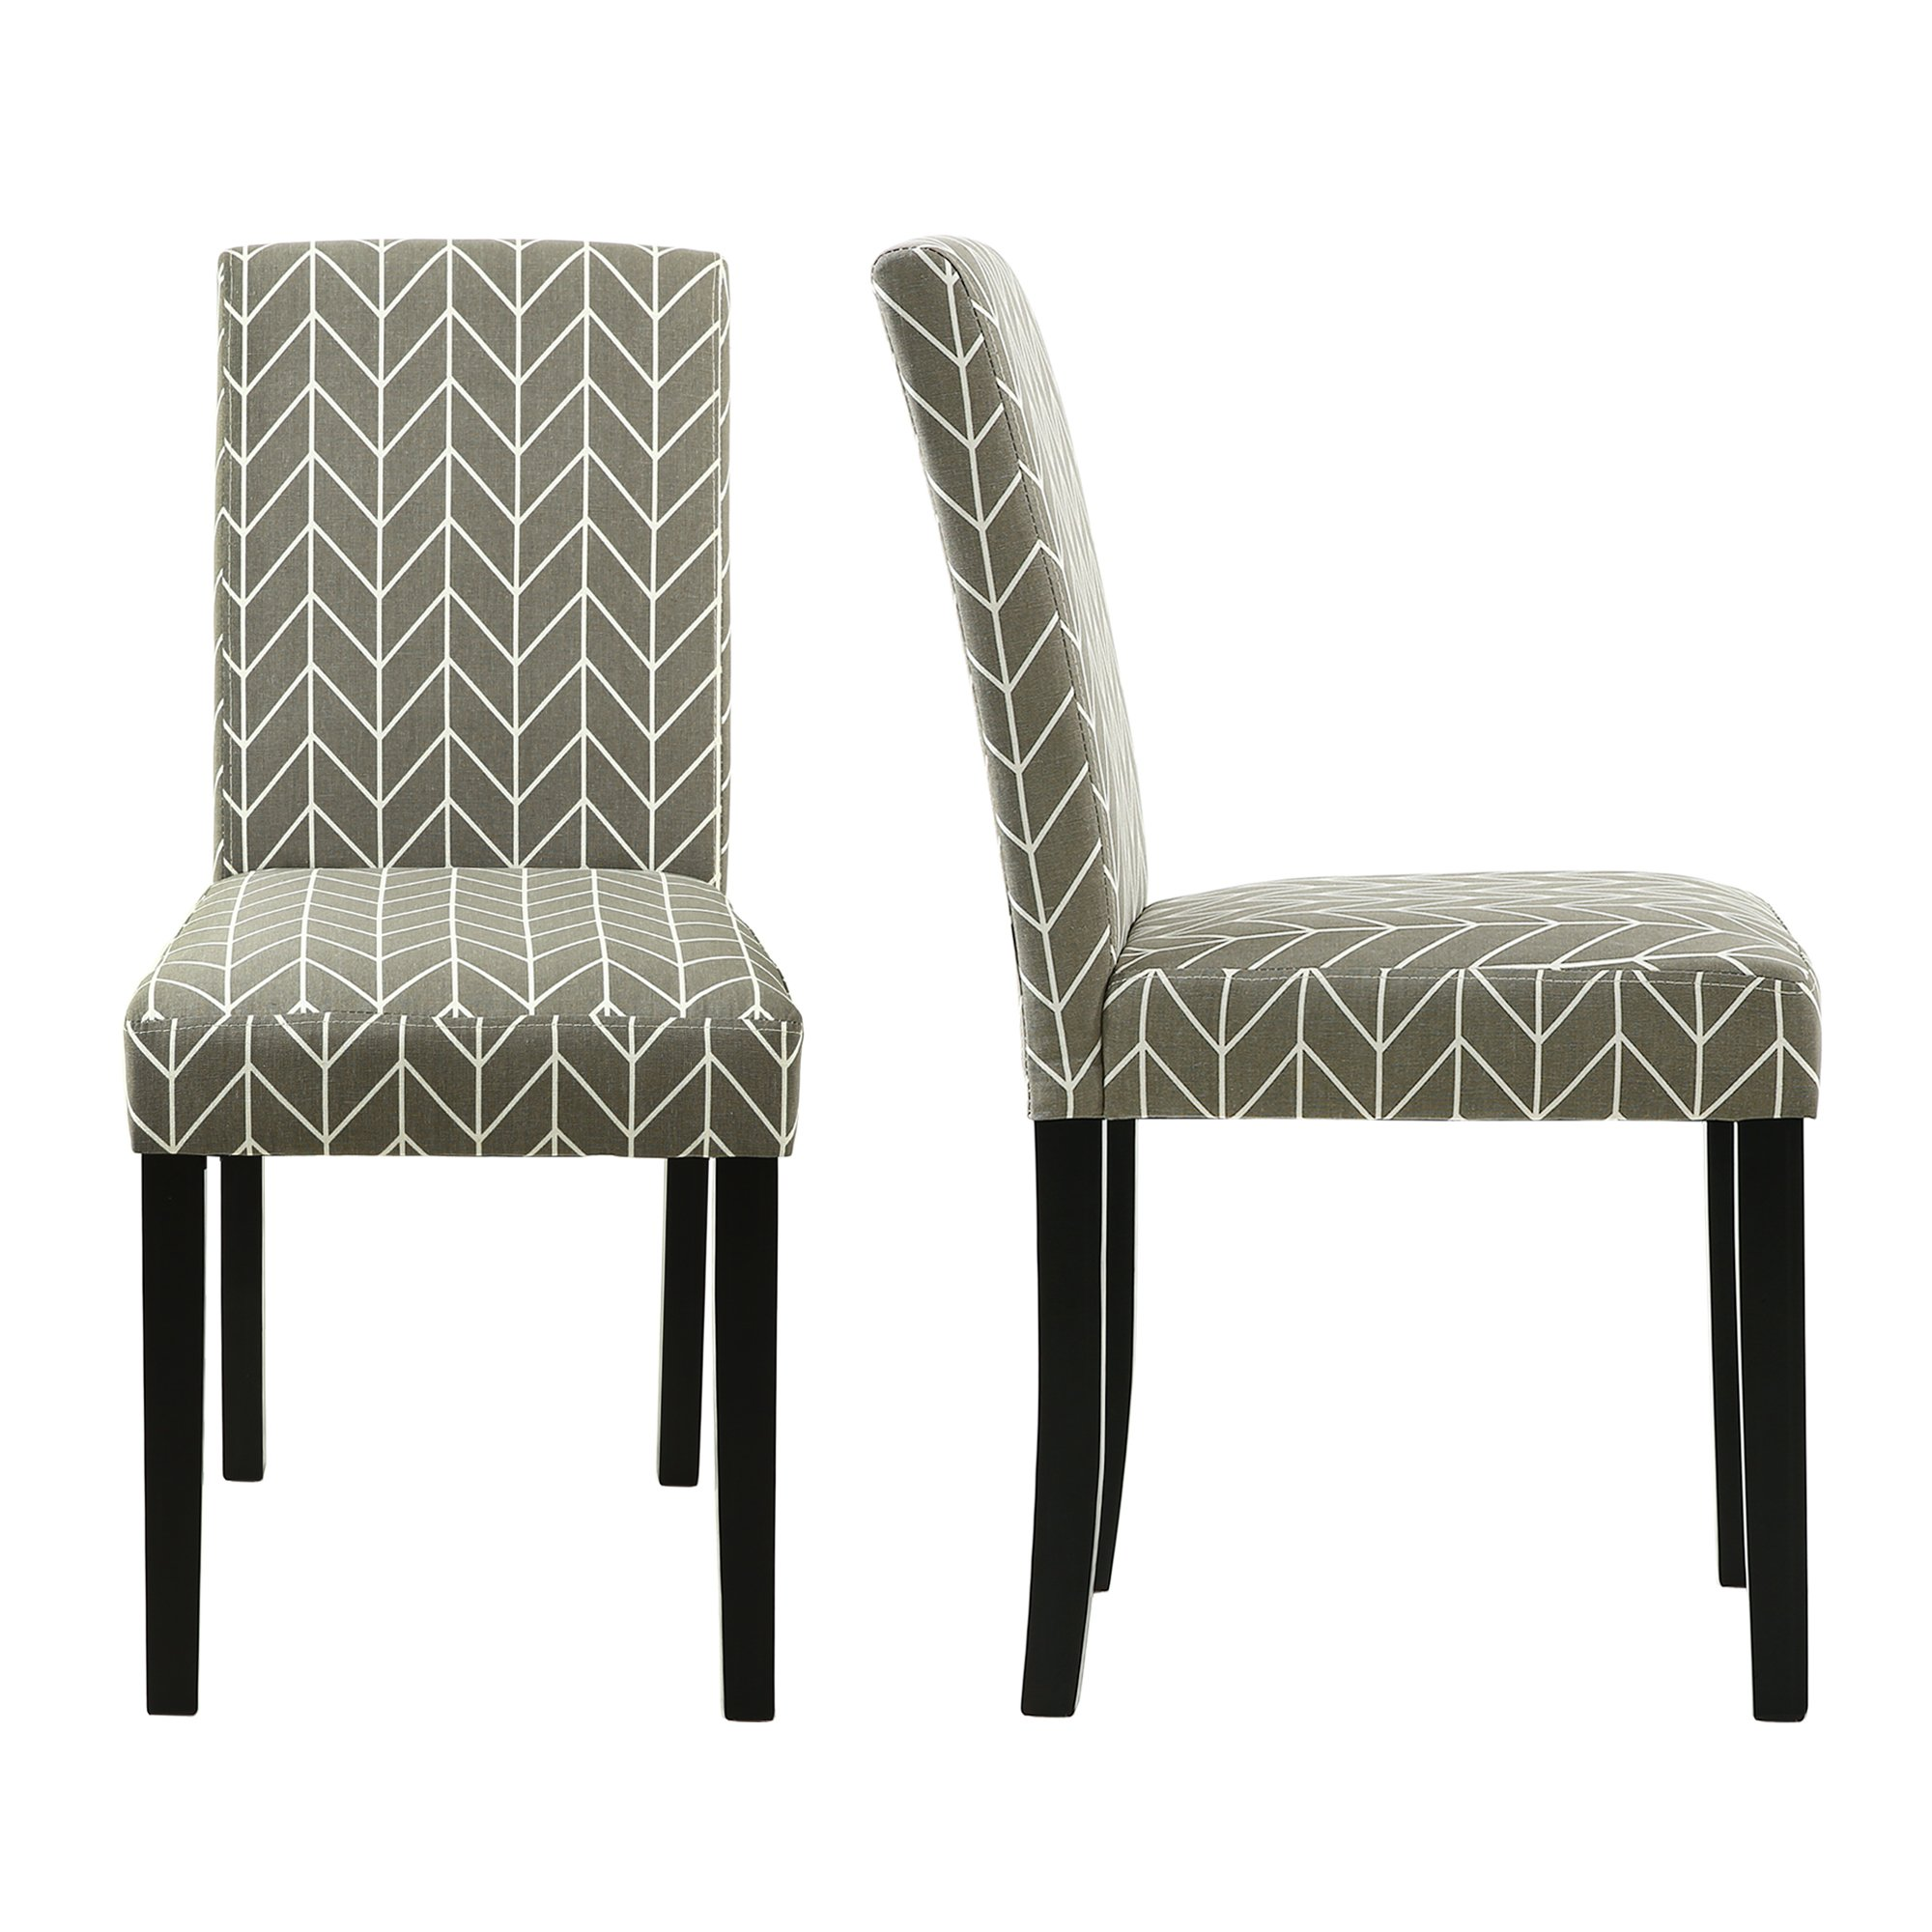 LSSBOUGHT Set of 2 Urban Style Fabric Dining Chairs With Solid Wood Legs (Arrow)